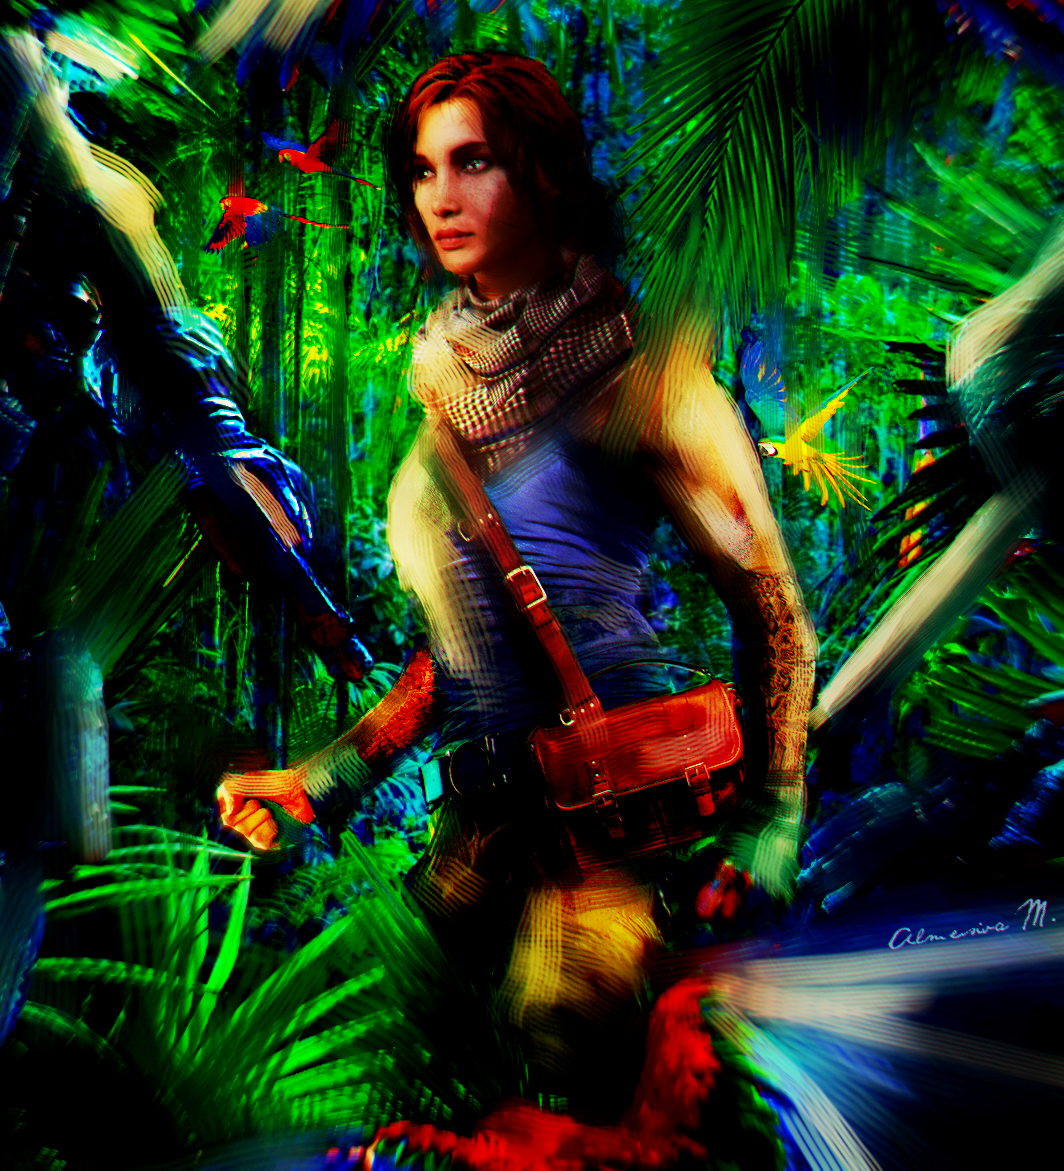 female far cry 3 characters